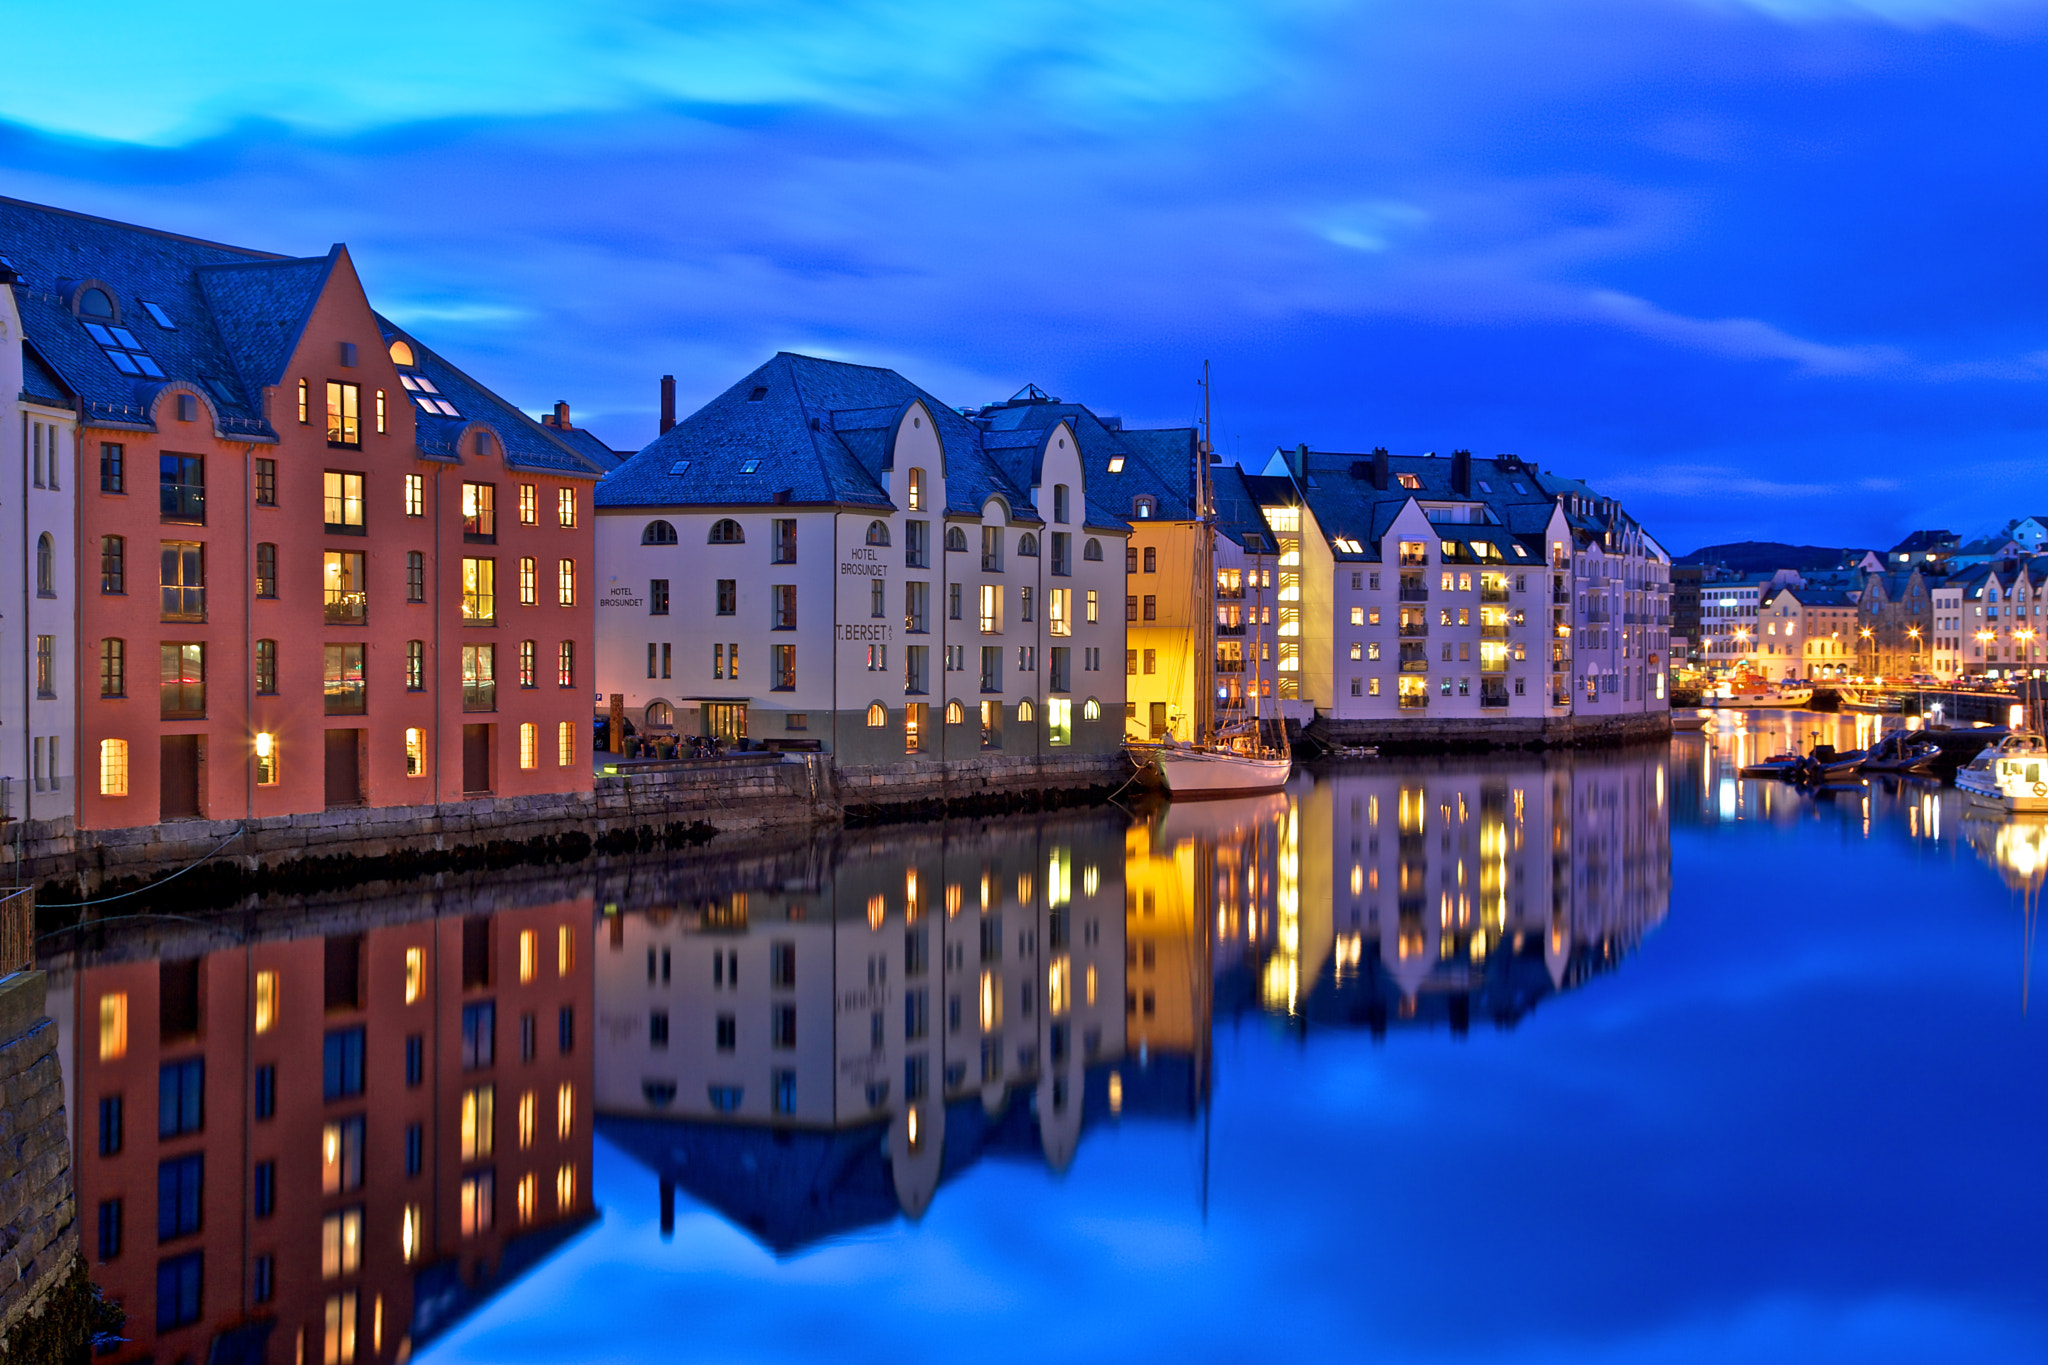 Photograph Blue hour, Norway by Europe Trotter on 500px